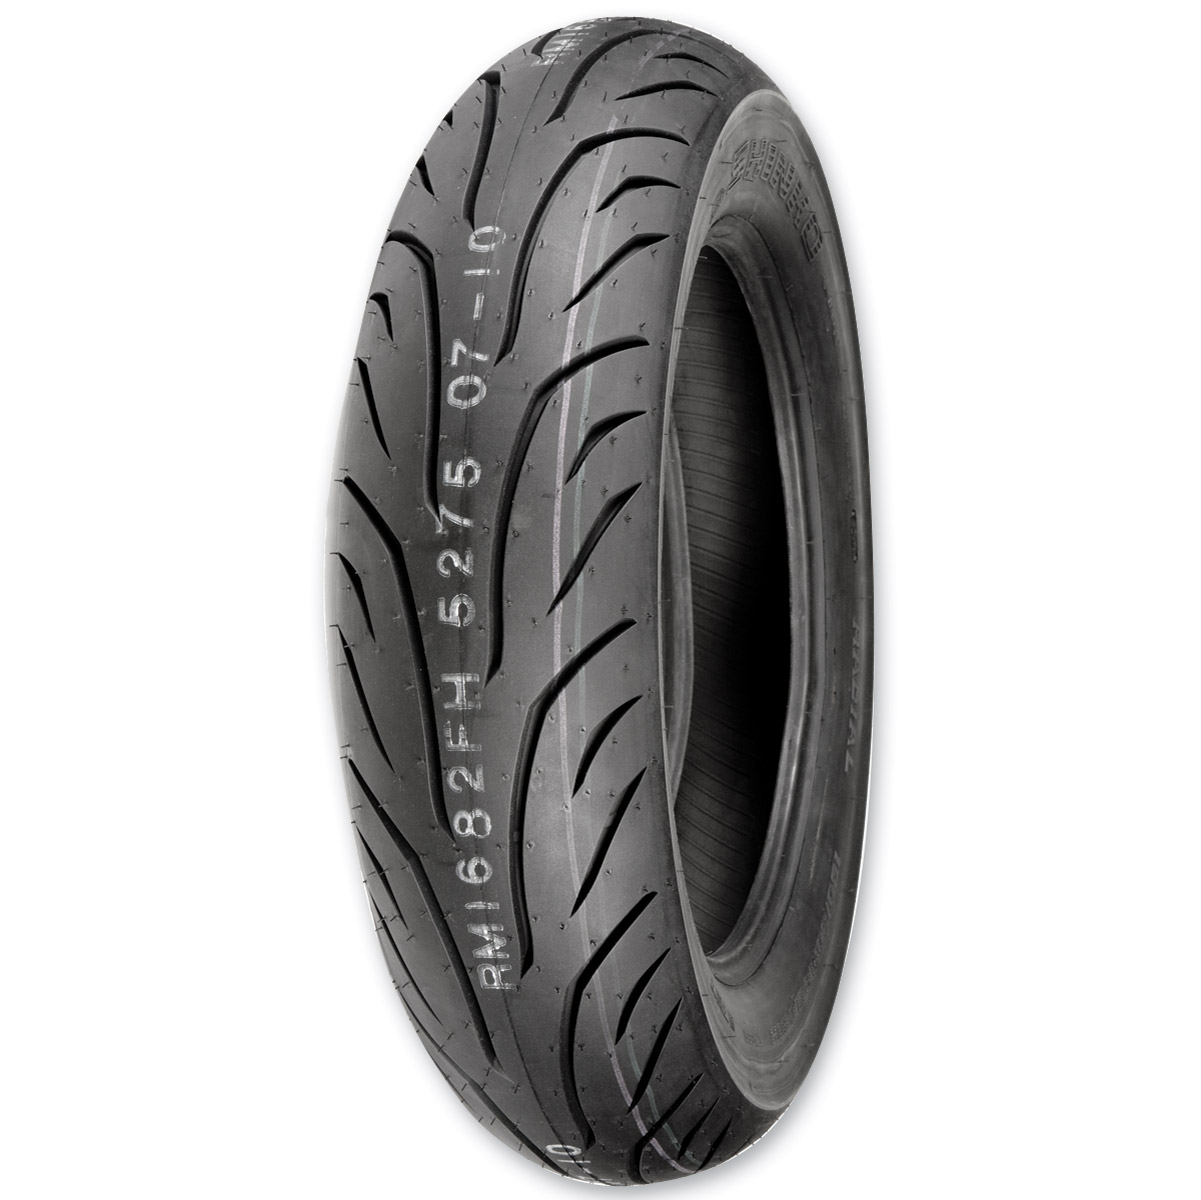 Shinko SE890 Journey 180/60R16 Rear Tire